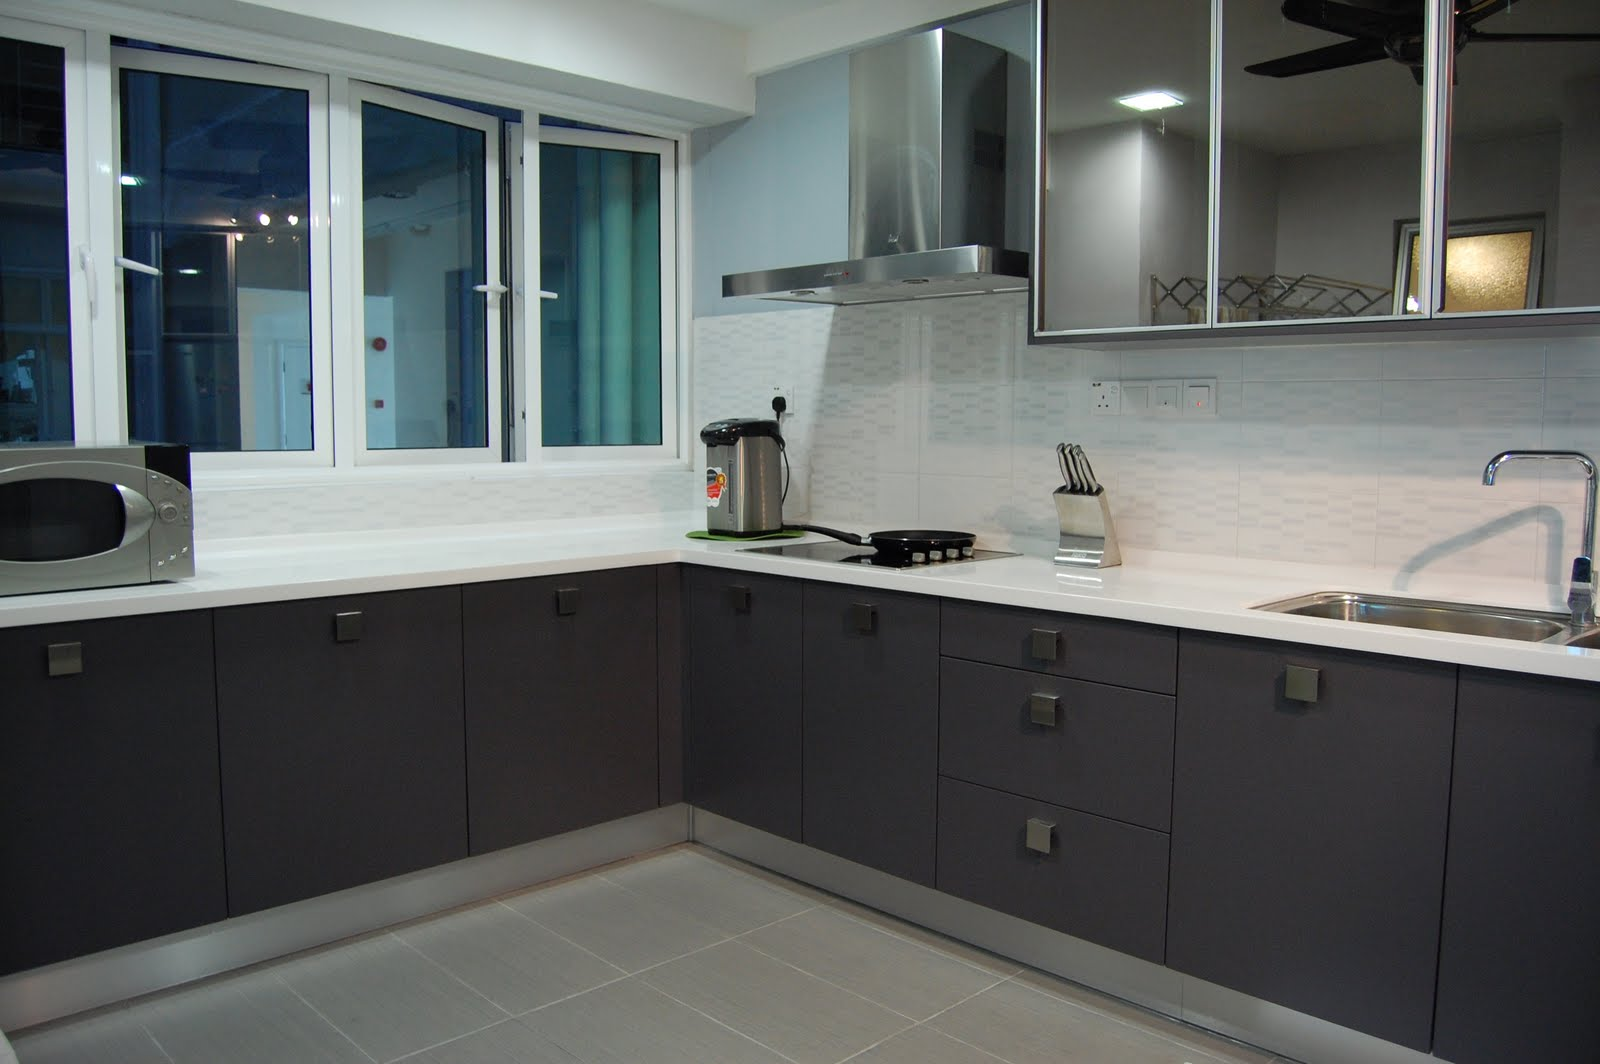 Meridian design kitchen cabinet and interior design blog for Home design ideas malaysia